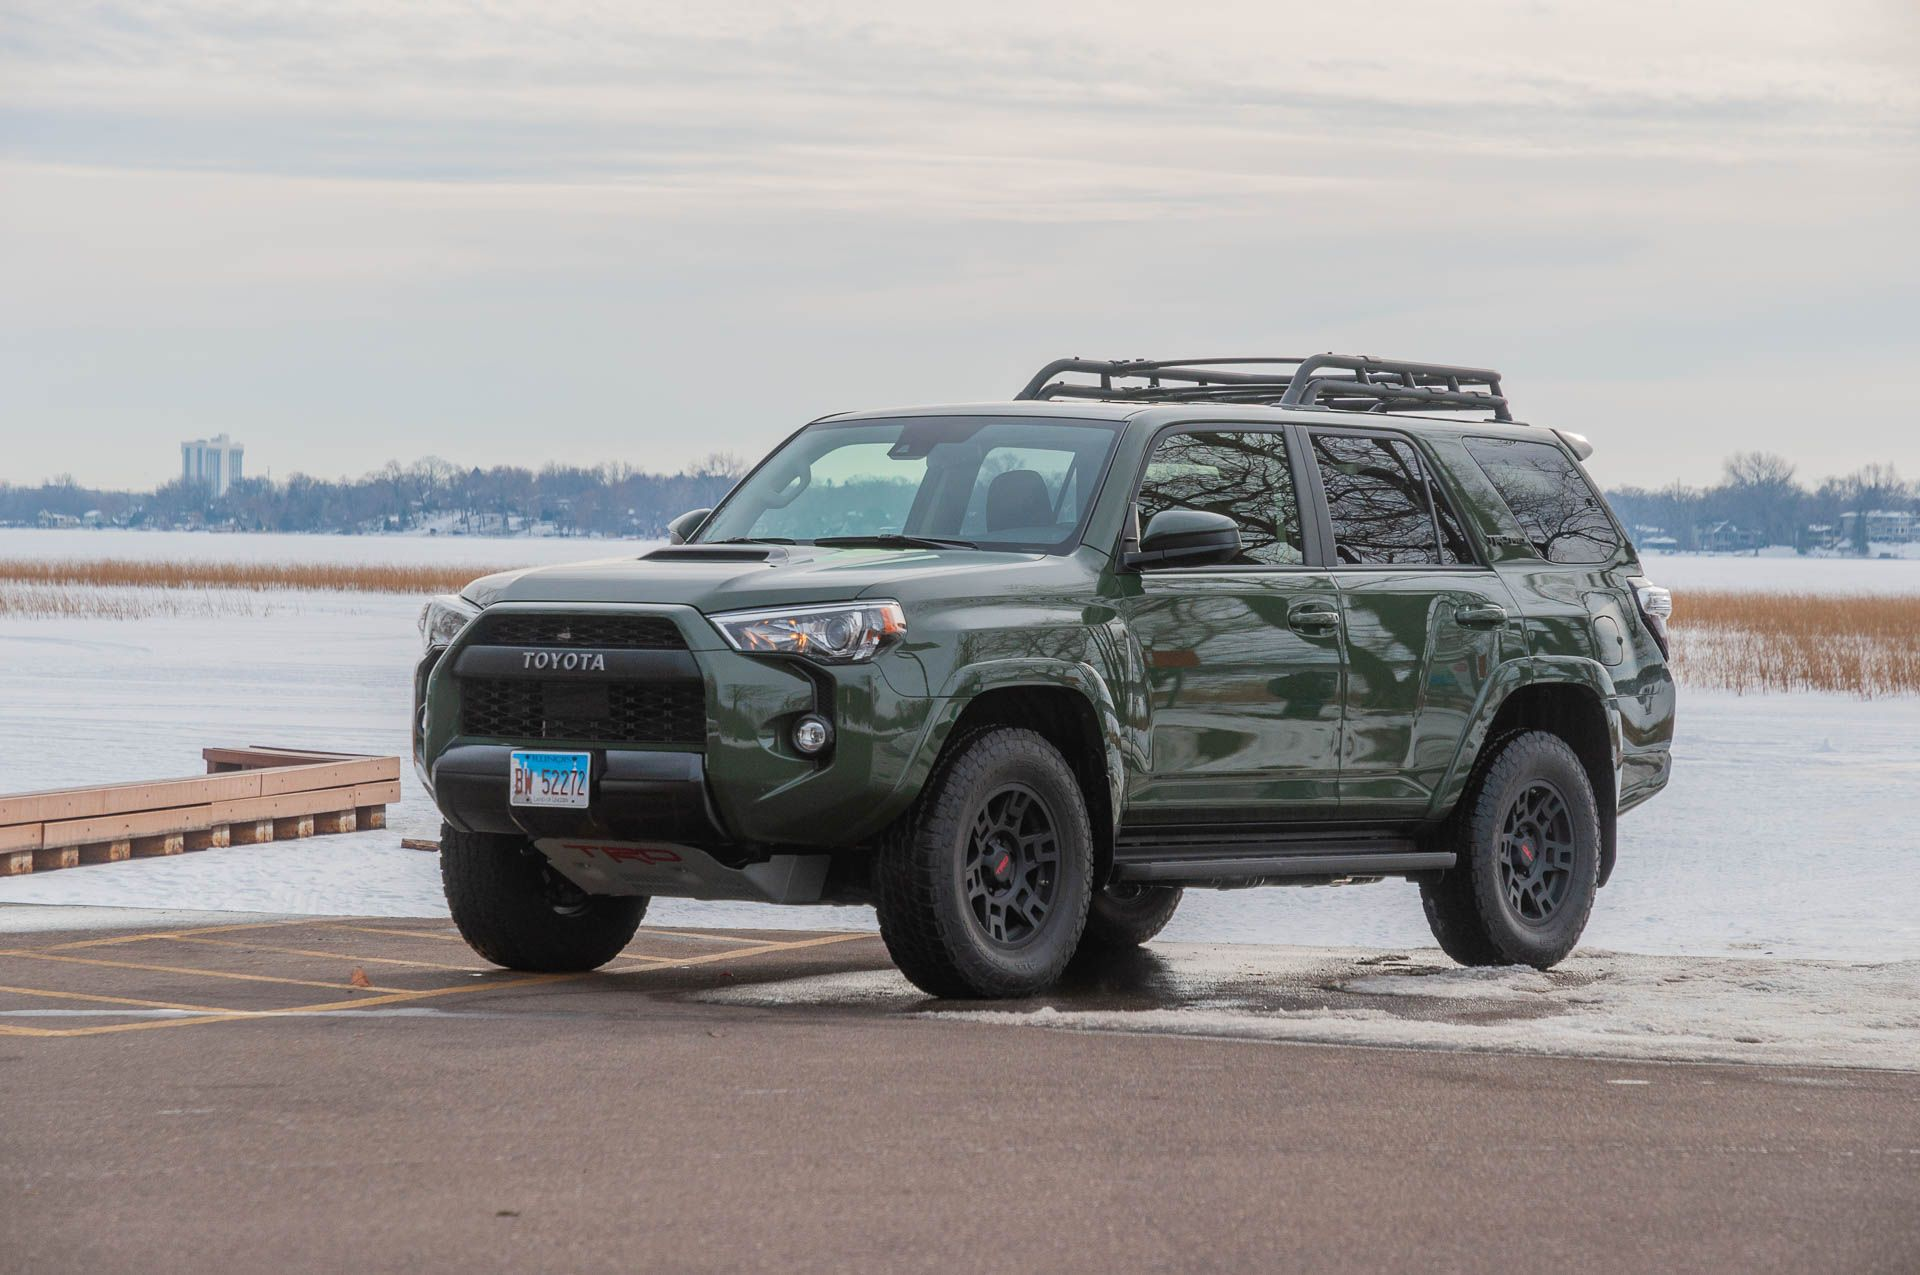 First Drive Review 2020 Toyota 4runner Trd Pro Gets Injected With Modern Technology In 2020 Toyota 4runner Toyota 4runner Trd 4runner Trd Pro